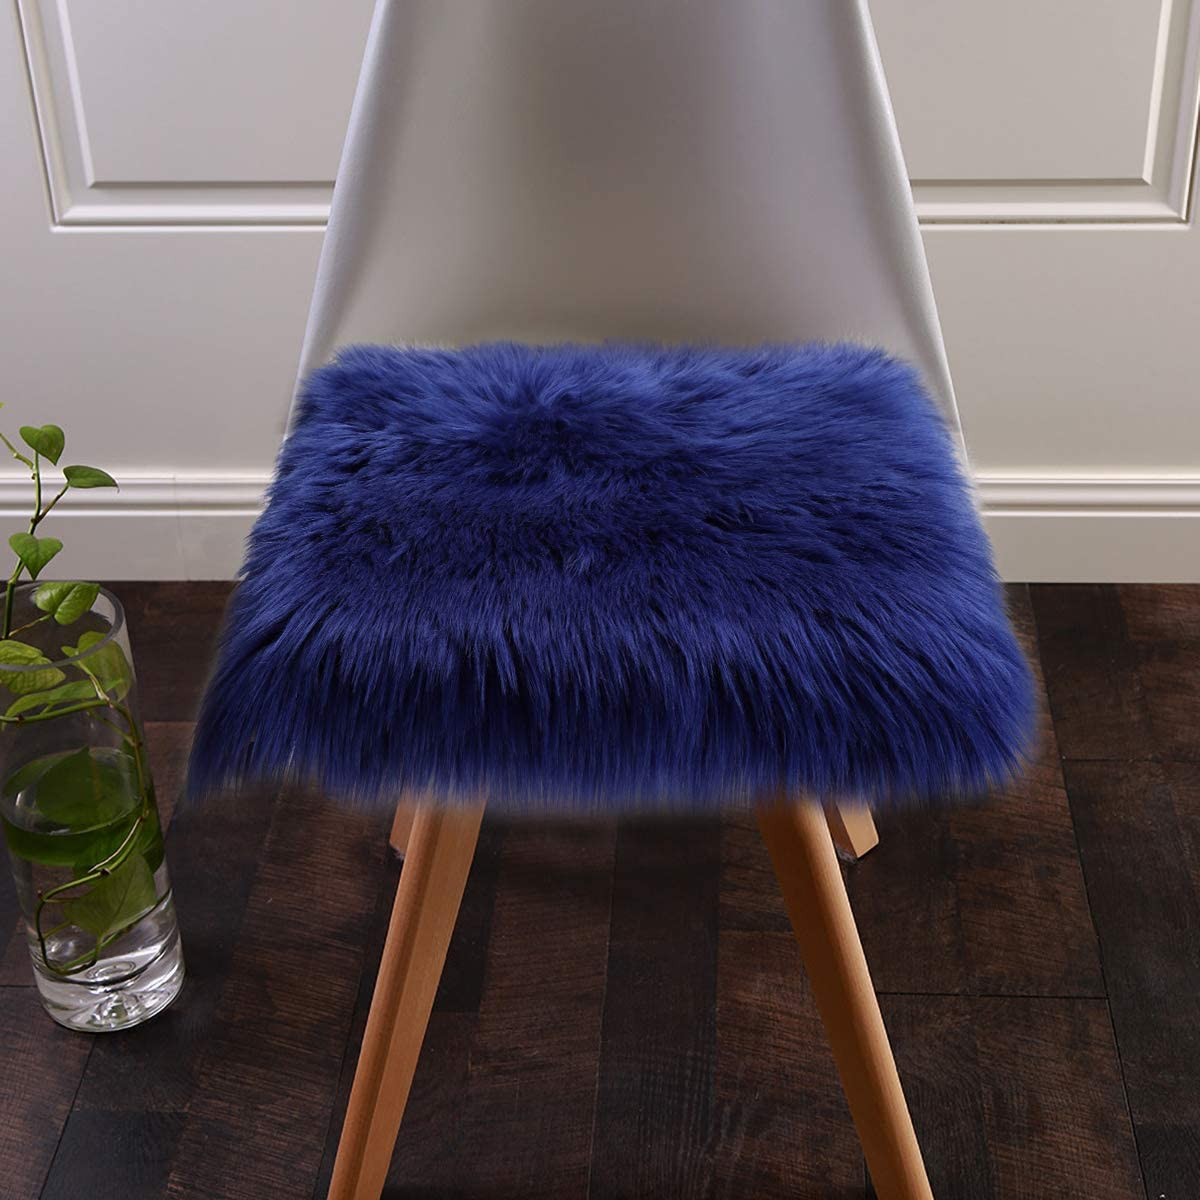 Softlife Faux Fur Sheepskin Area Rug Shaggy Wool Carpet for Bedroom Living Room Home Decor (1.6ft x 1.6ft Square, Royal Blue)